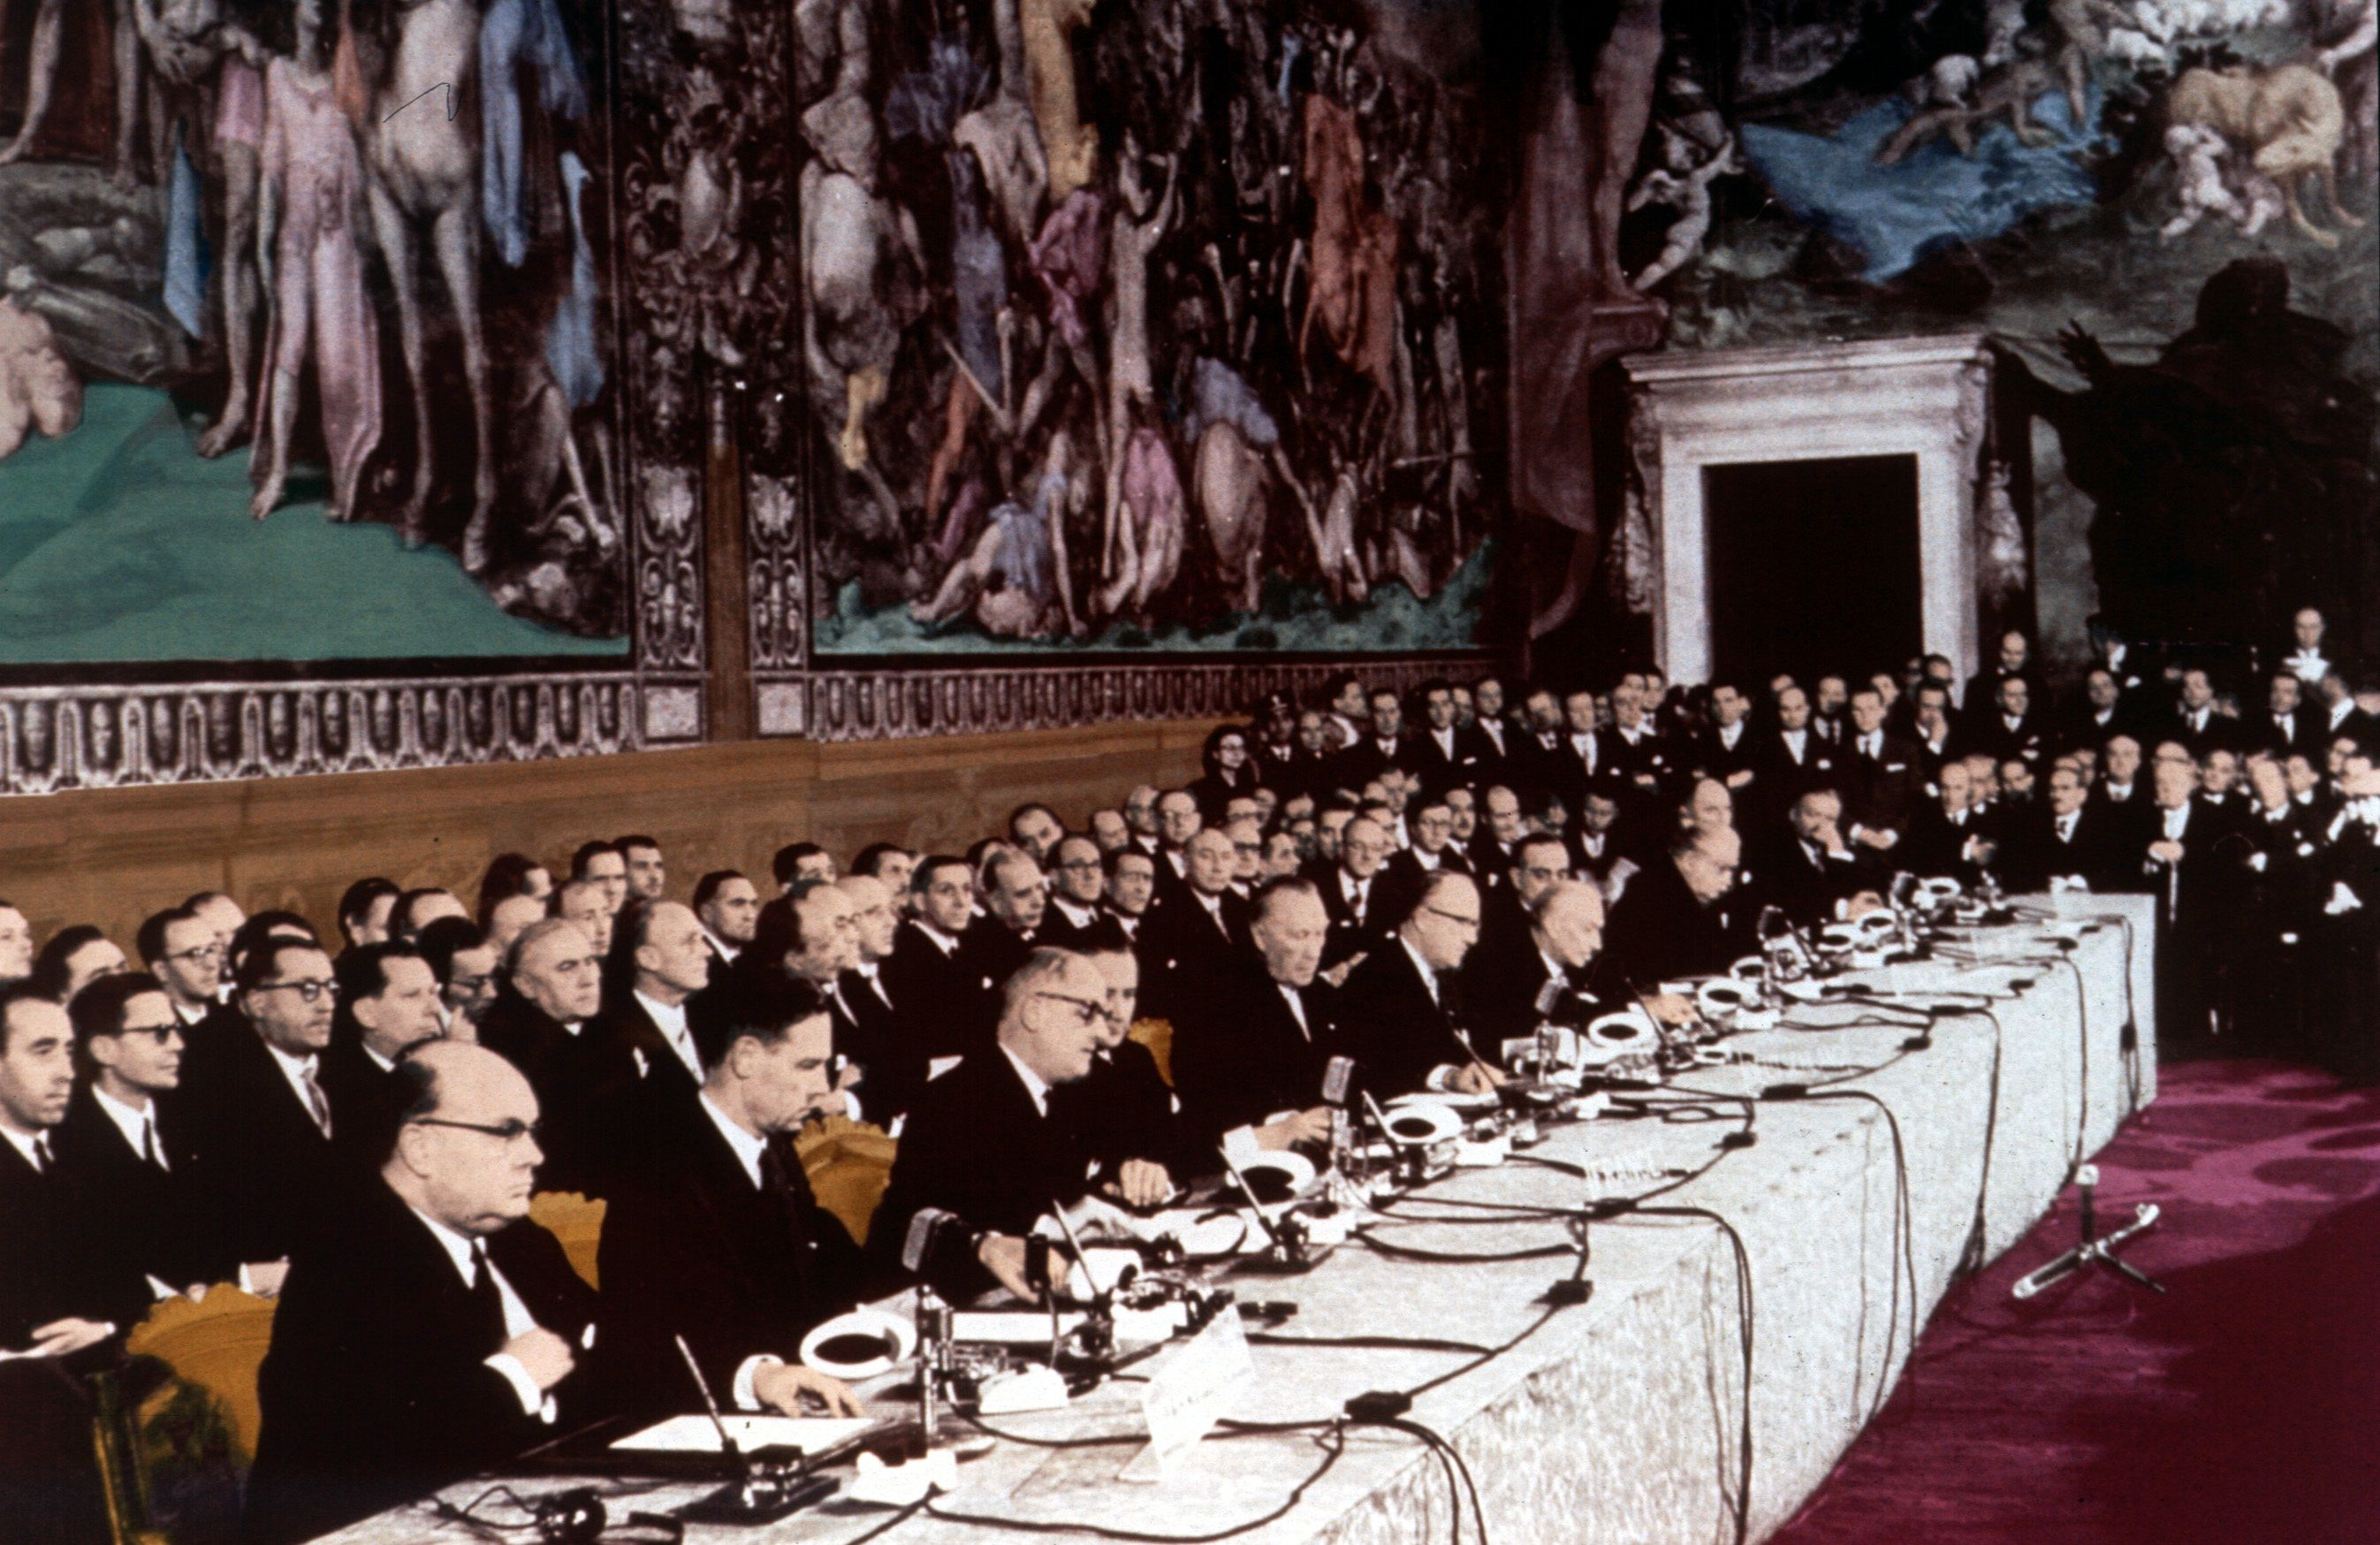 The 1957 Treaties of Rome signing ceremony. Italy is a founding member of the European Union.